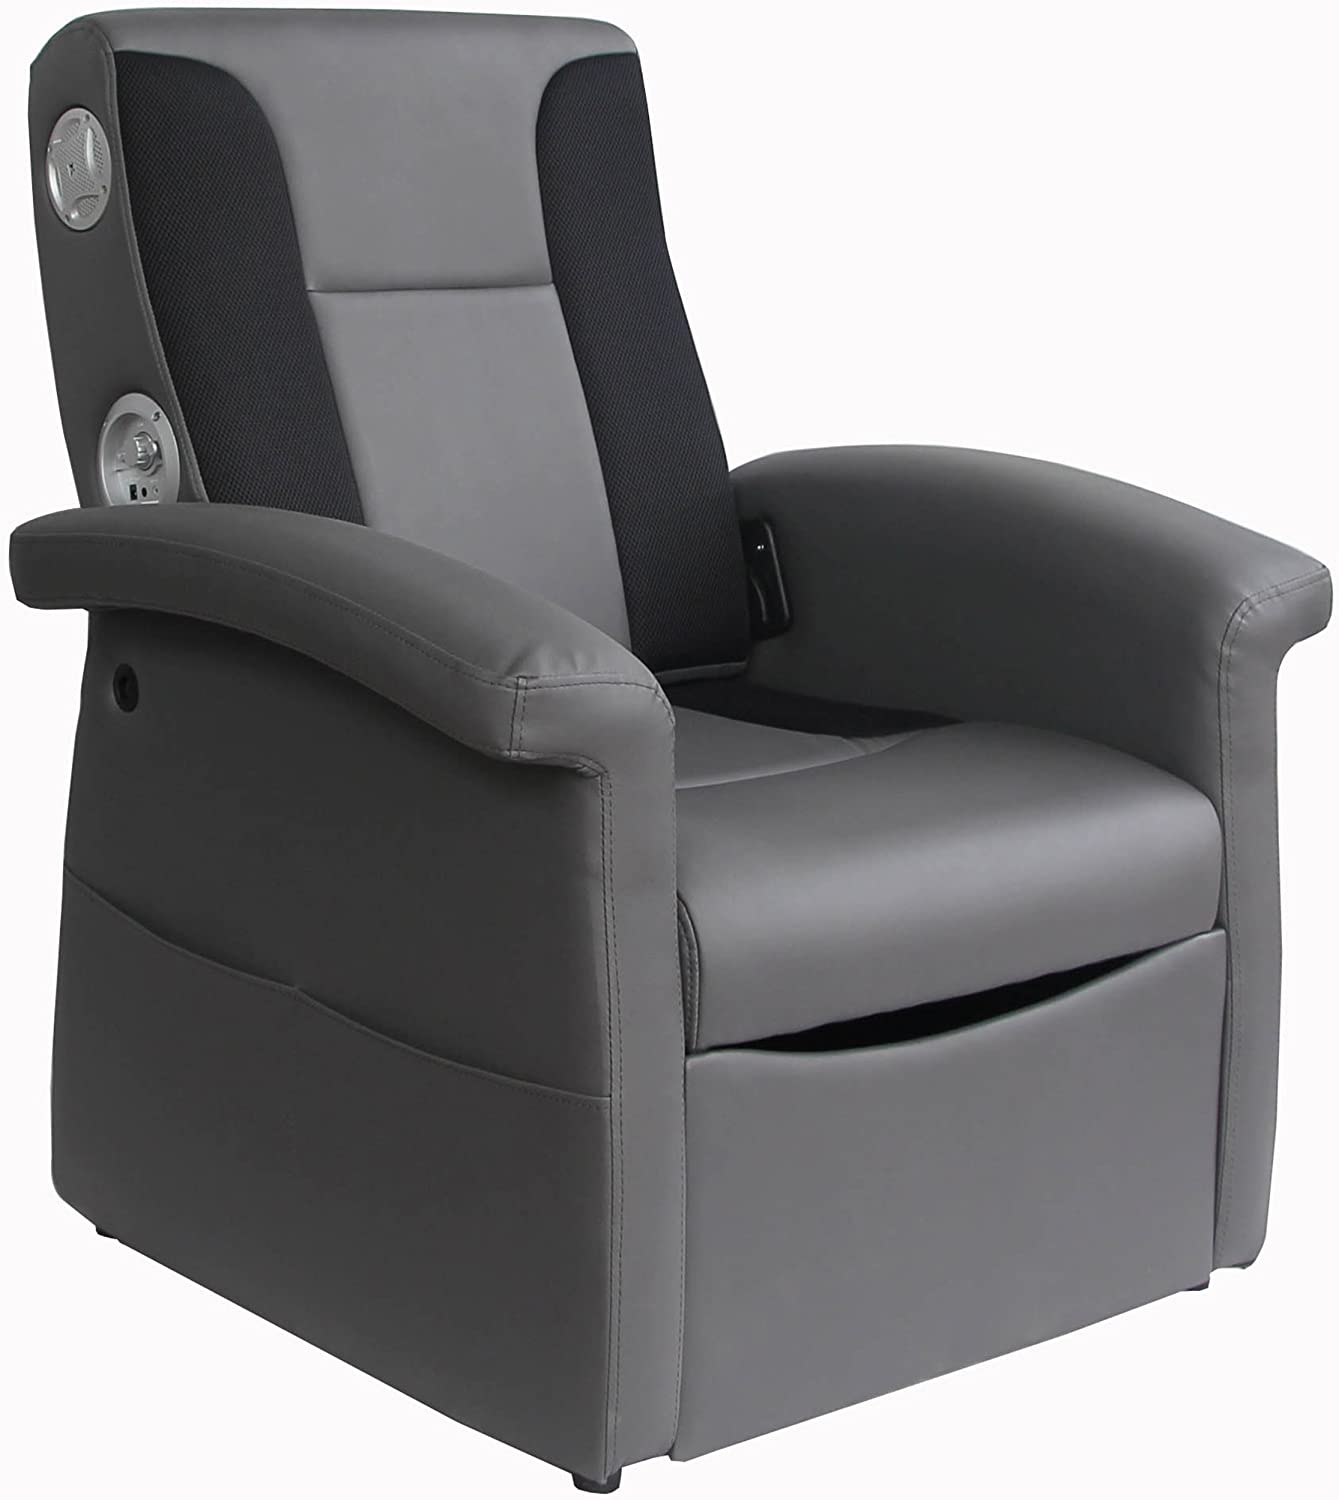 X Rocker Triple Flip 2.1 Sound Recliner Chair